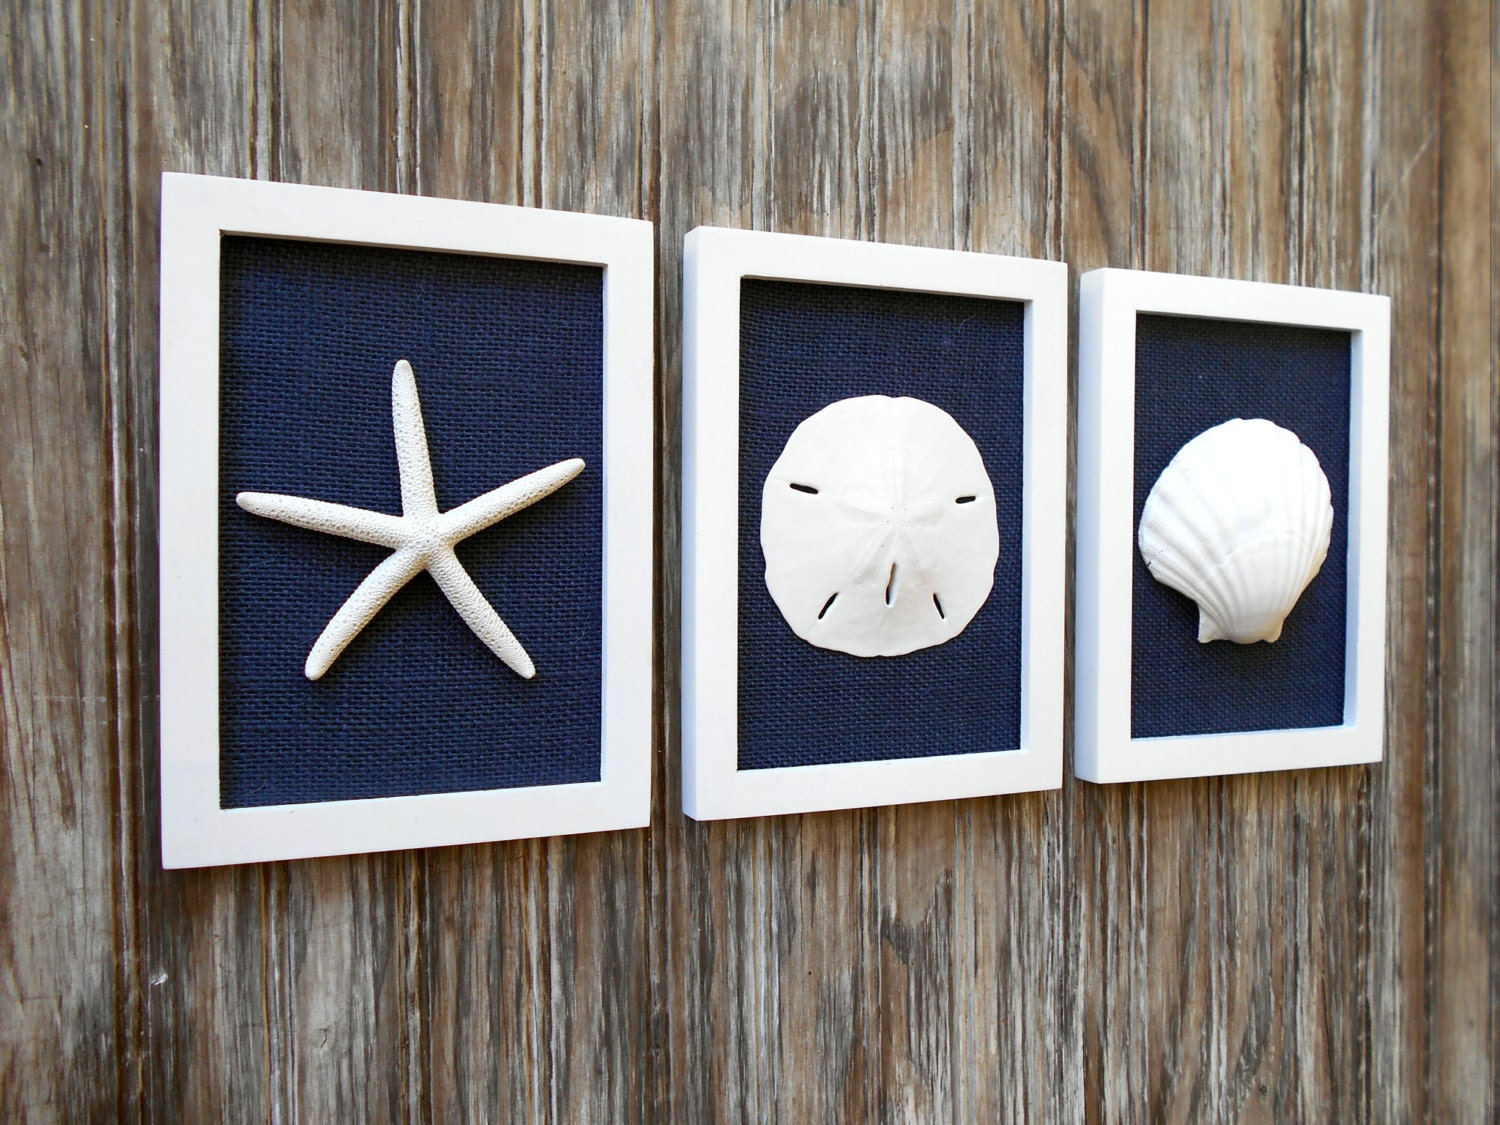 Bathroom wall art sea - Cottage Chic Set Of Beach Wall Art Beach House Decor Navy Wall Art Coastal Decor Coastal Art Bathroom Decor Navy Blue Burlap